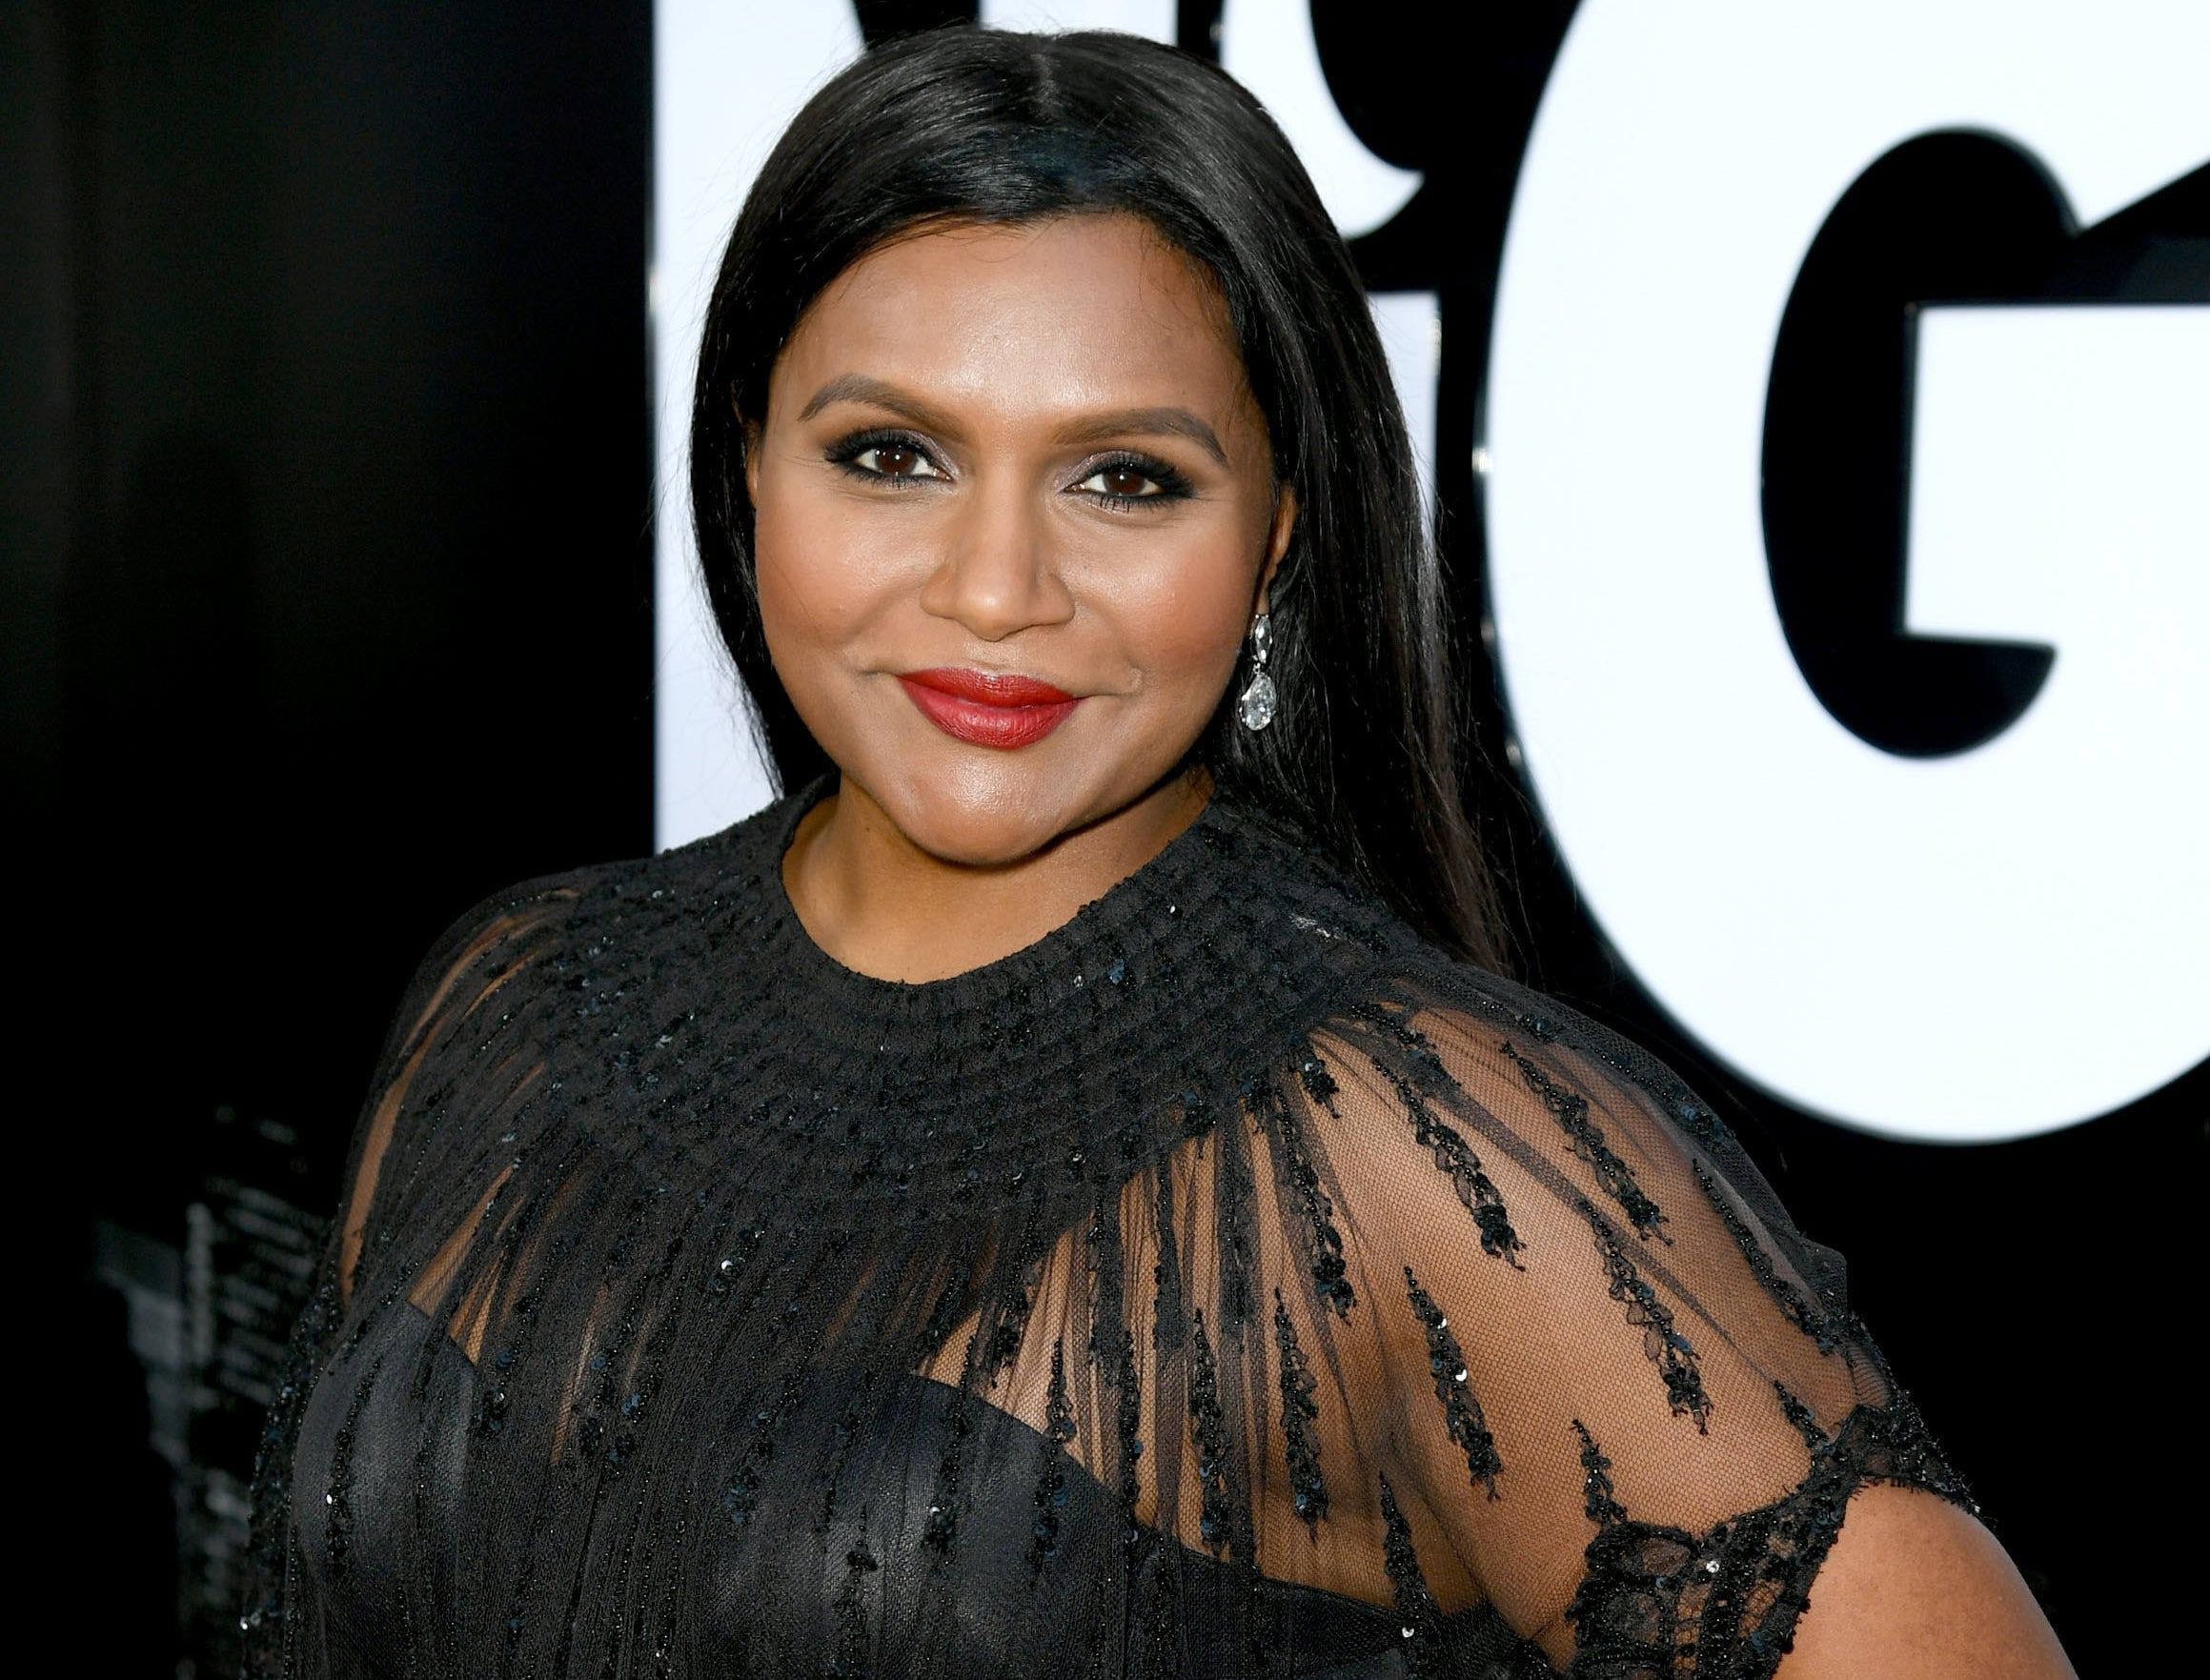 Mindy smiles in a black dress at an event